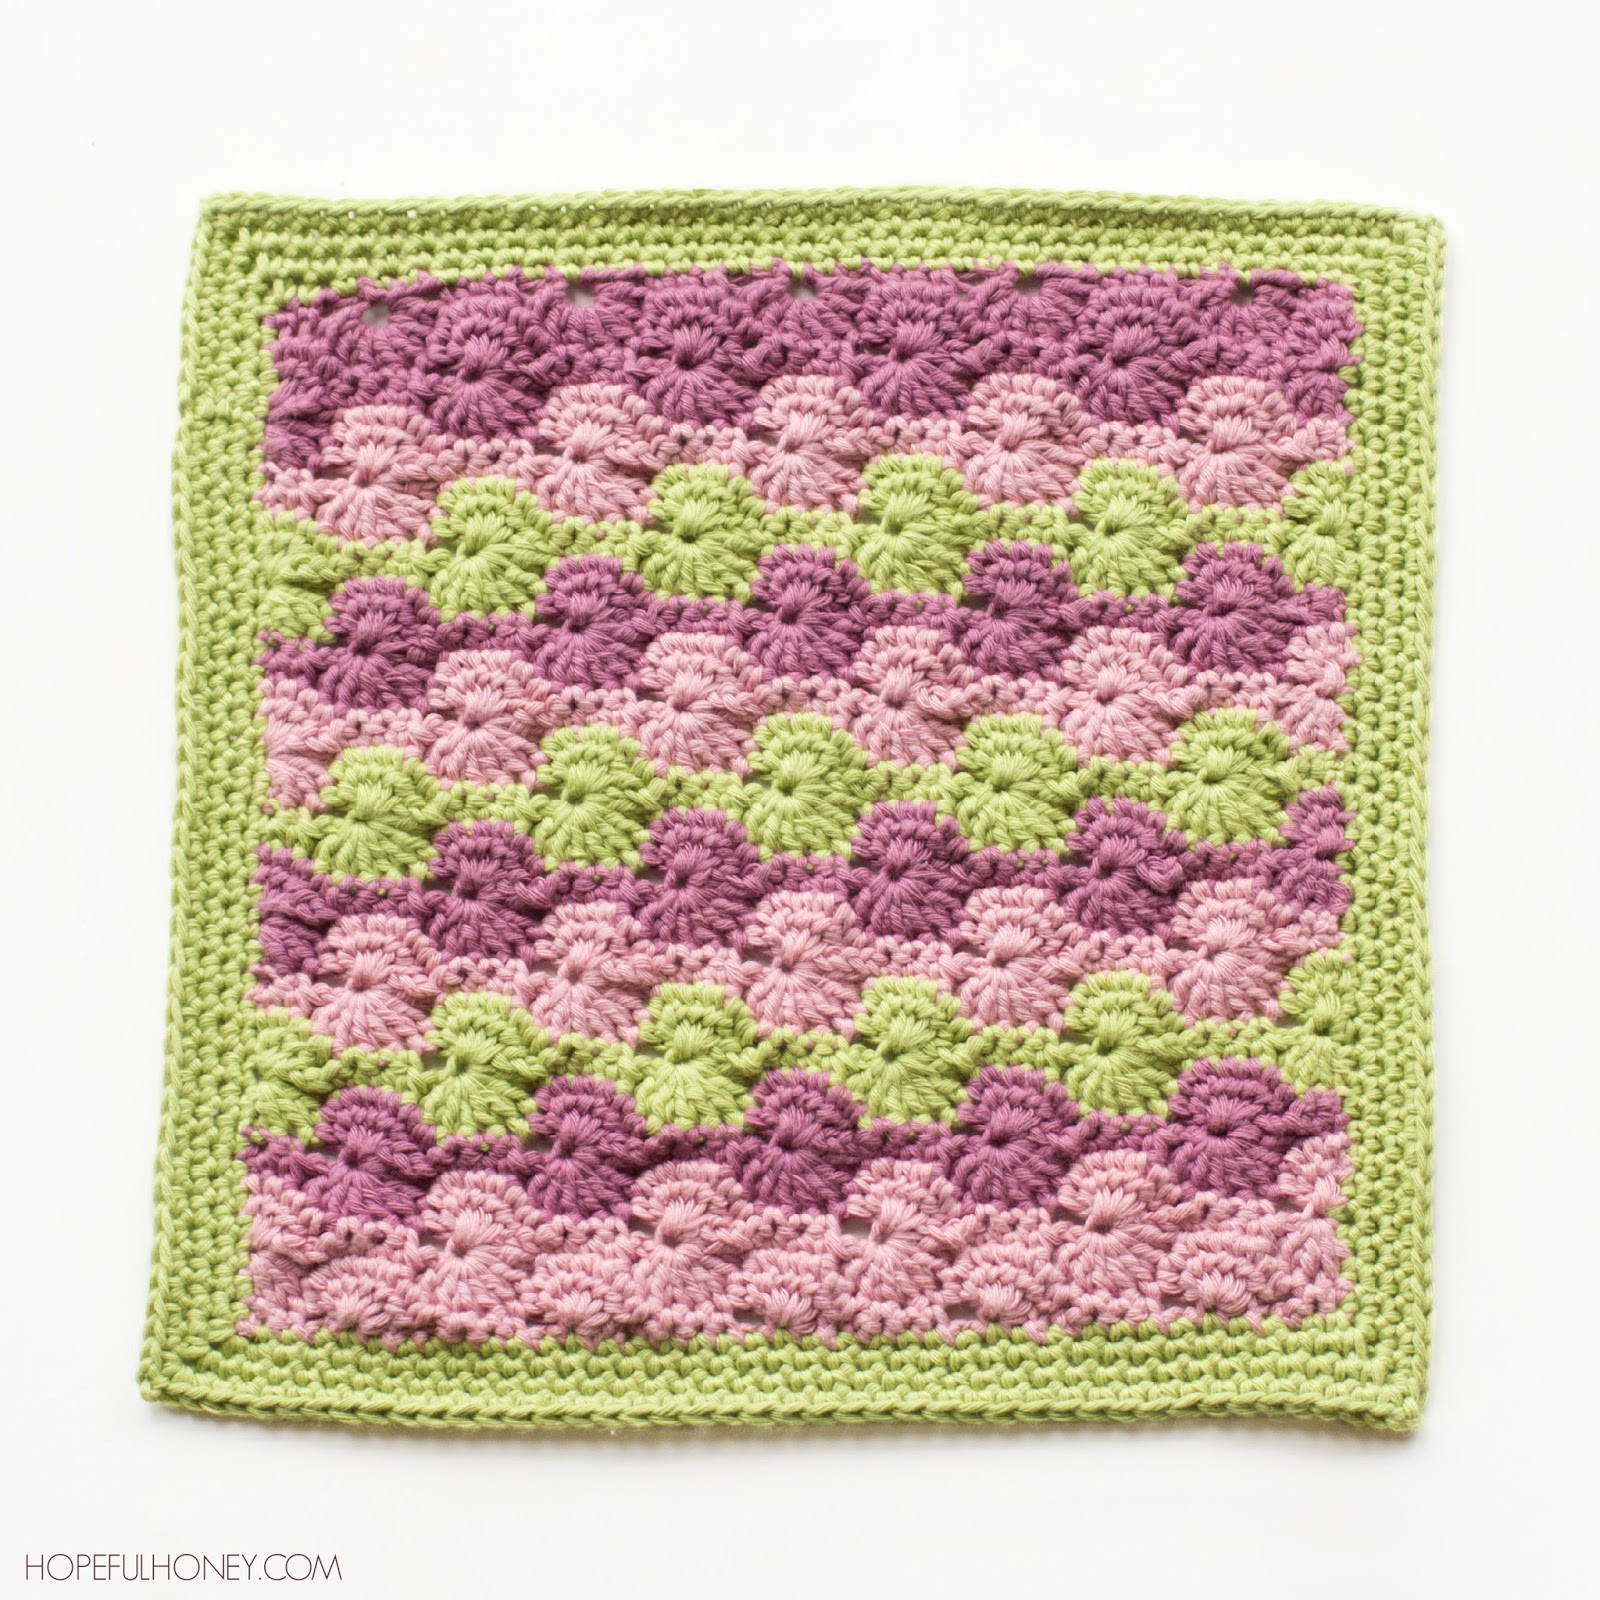 Crochet Square Patterns Fresh Meadow Afghan Square Interweave Of Marvelous 43 Photos Crochet Square Patterns